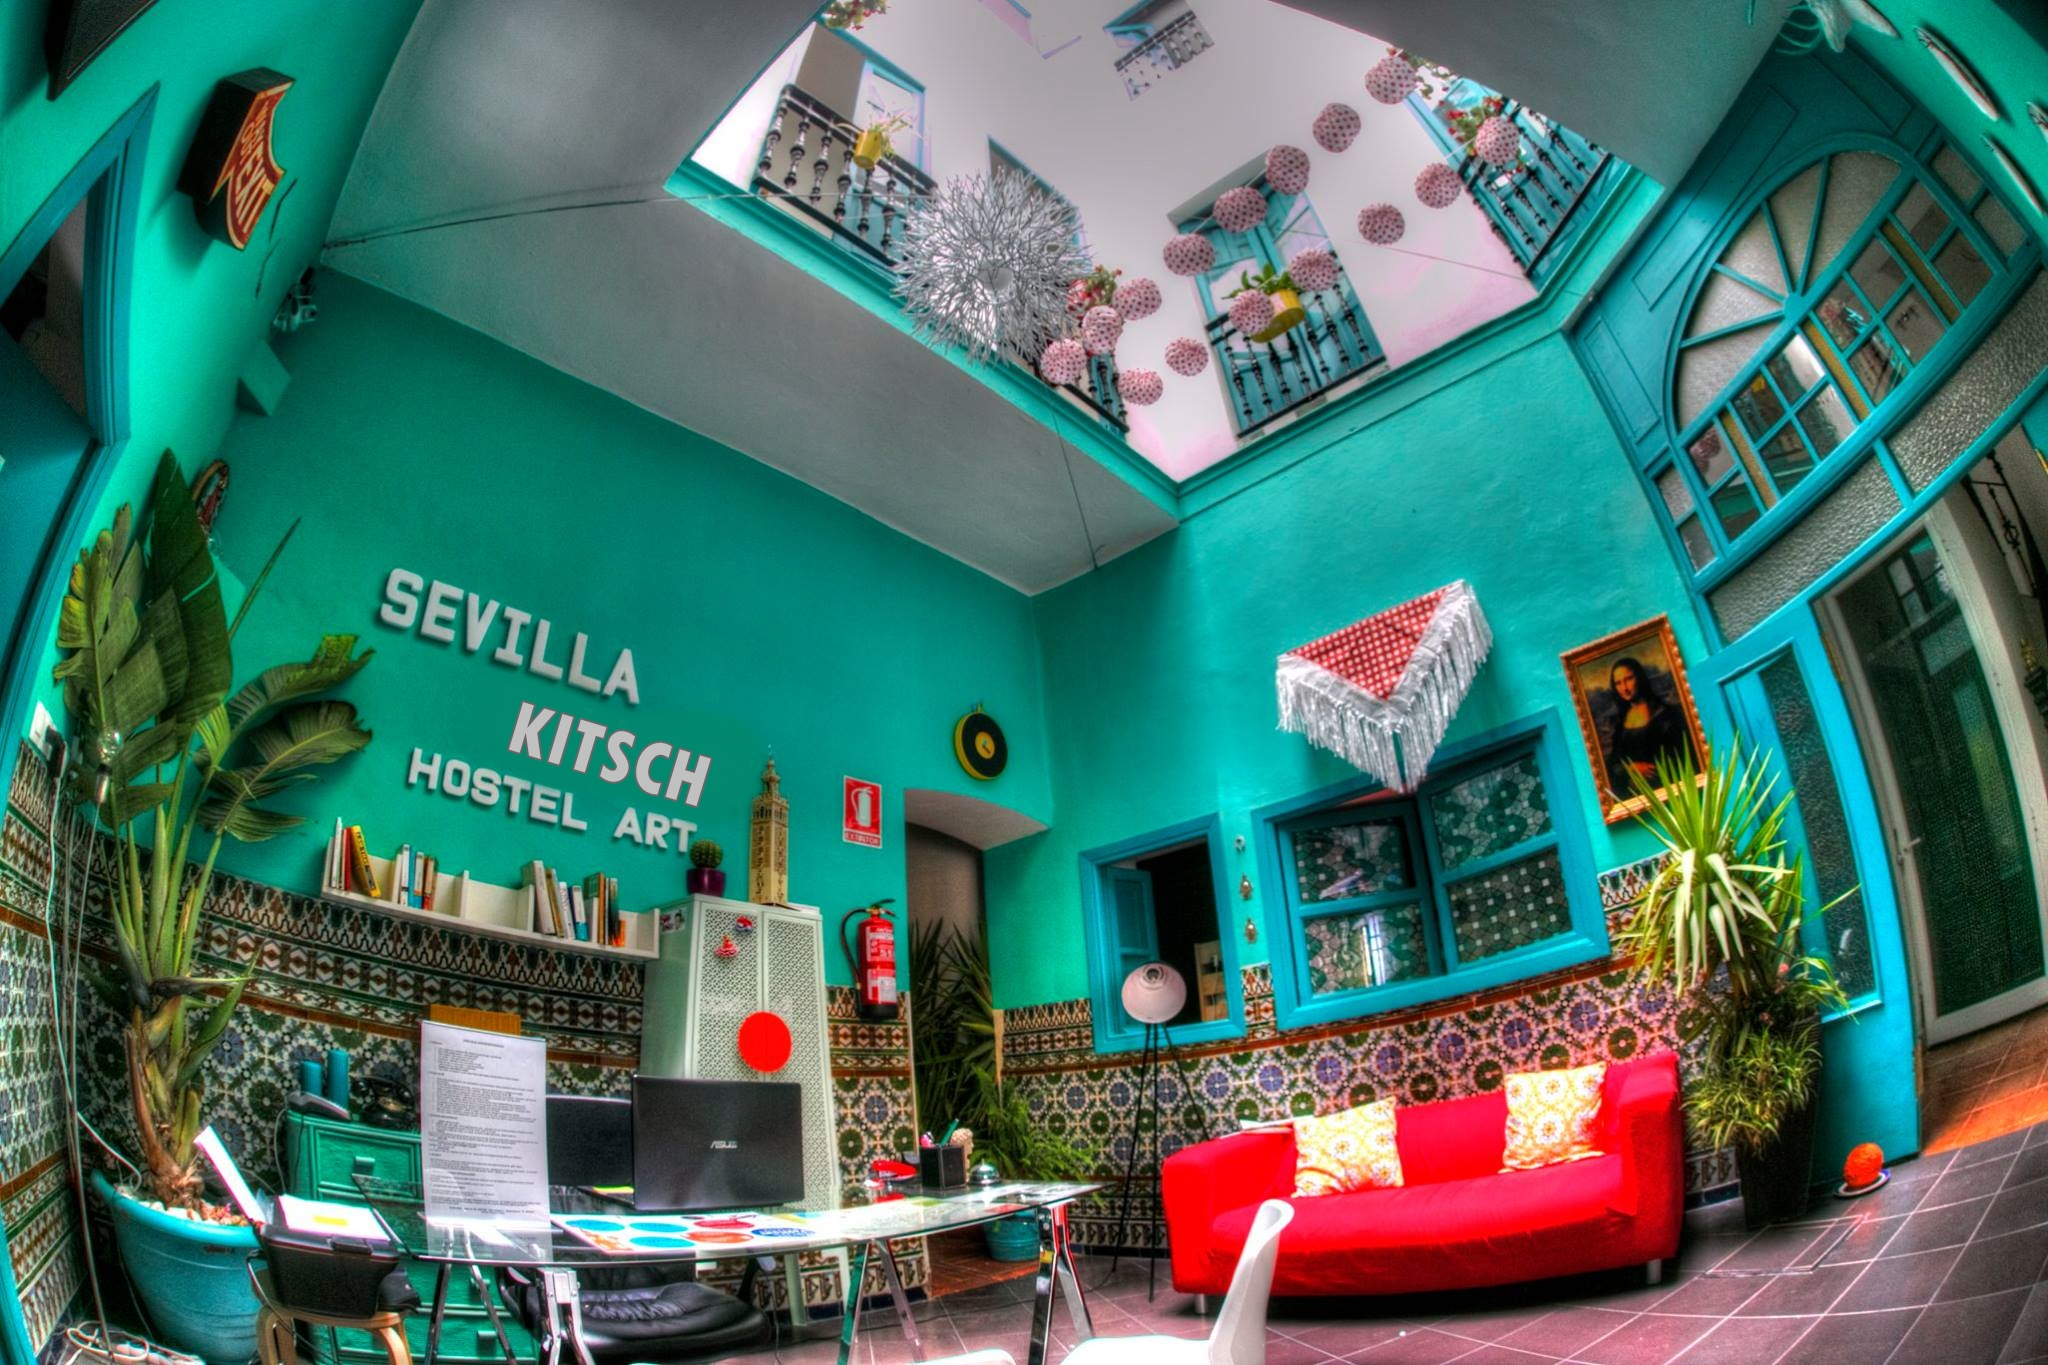 Sevilla Kitsch Hostel Art